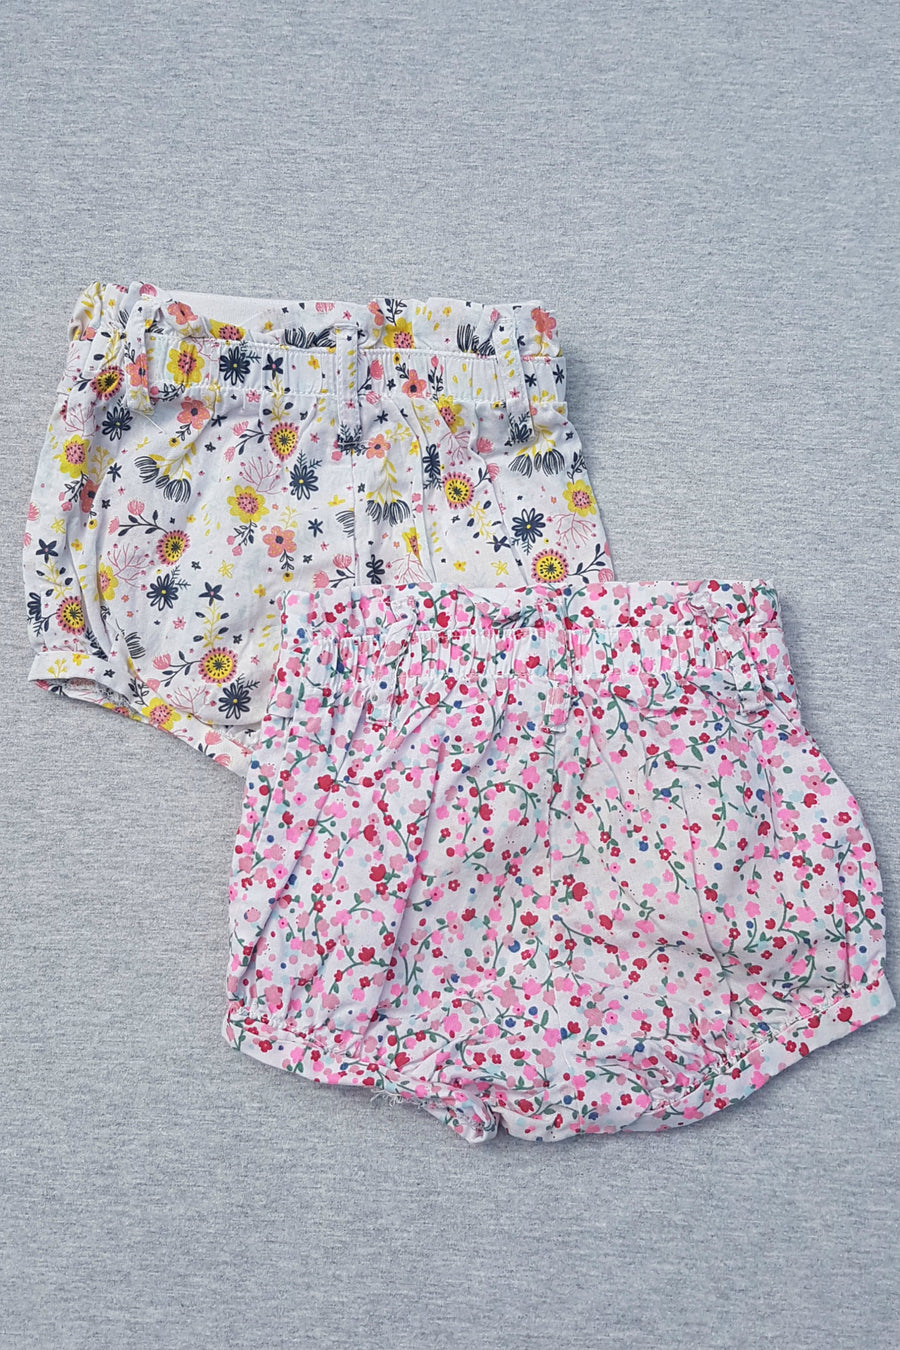 Cotton On 2 x floral shorts, size 0-3m